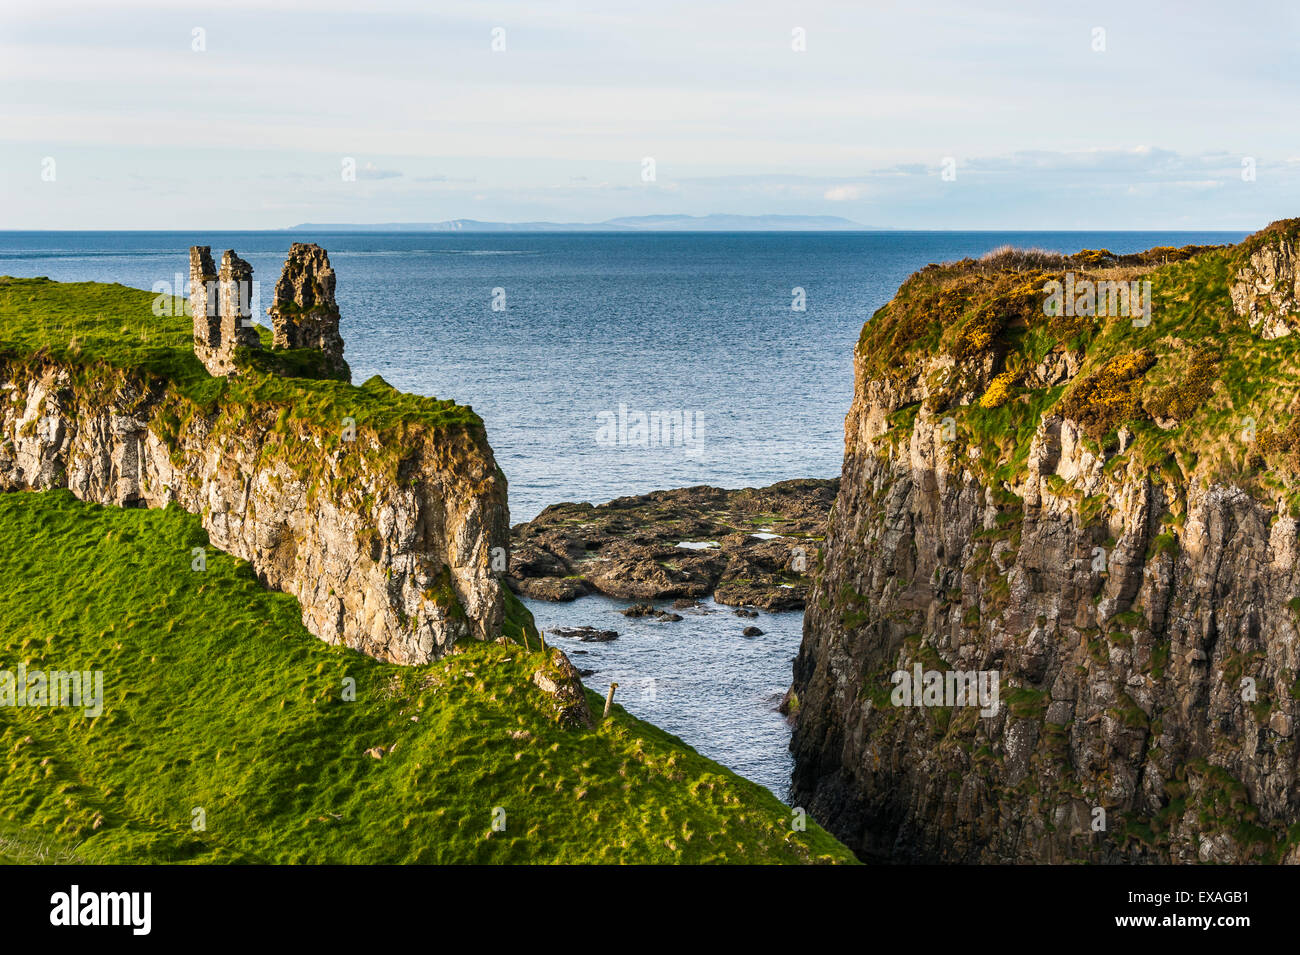 Dunseverick Castle near the Giants Causeway, County Antrim, Ulster, Northern Ireland, United Kingdom, Europe - Stock Image